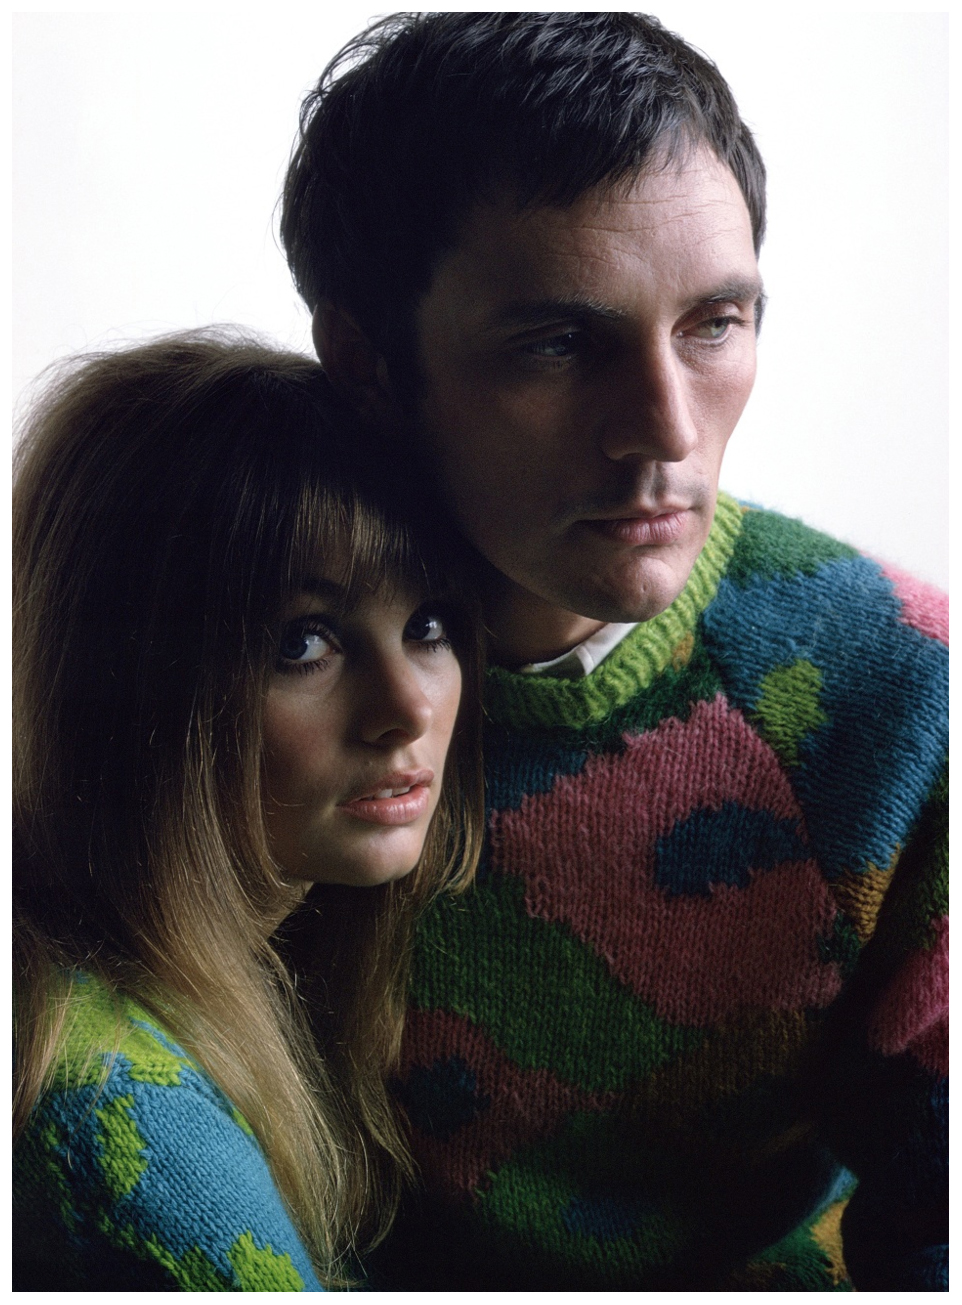 Jean Shrimpton And Terence Stamp 1967